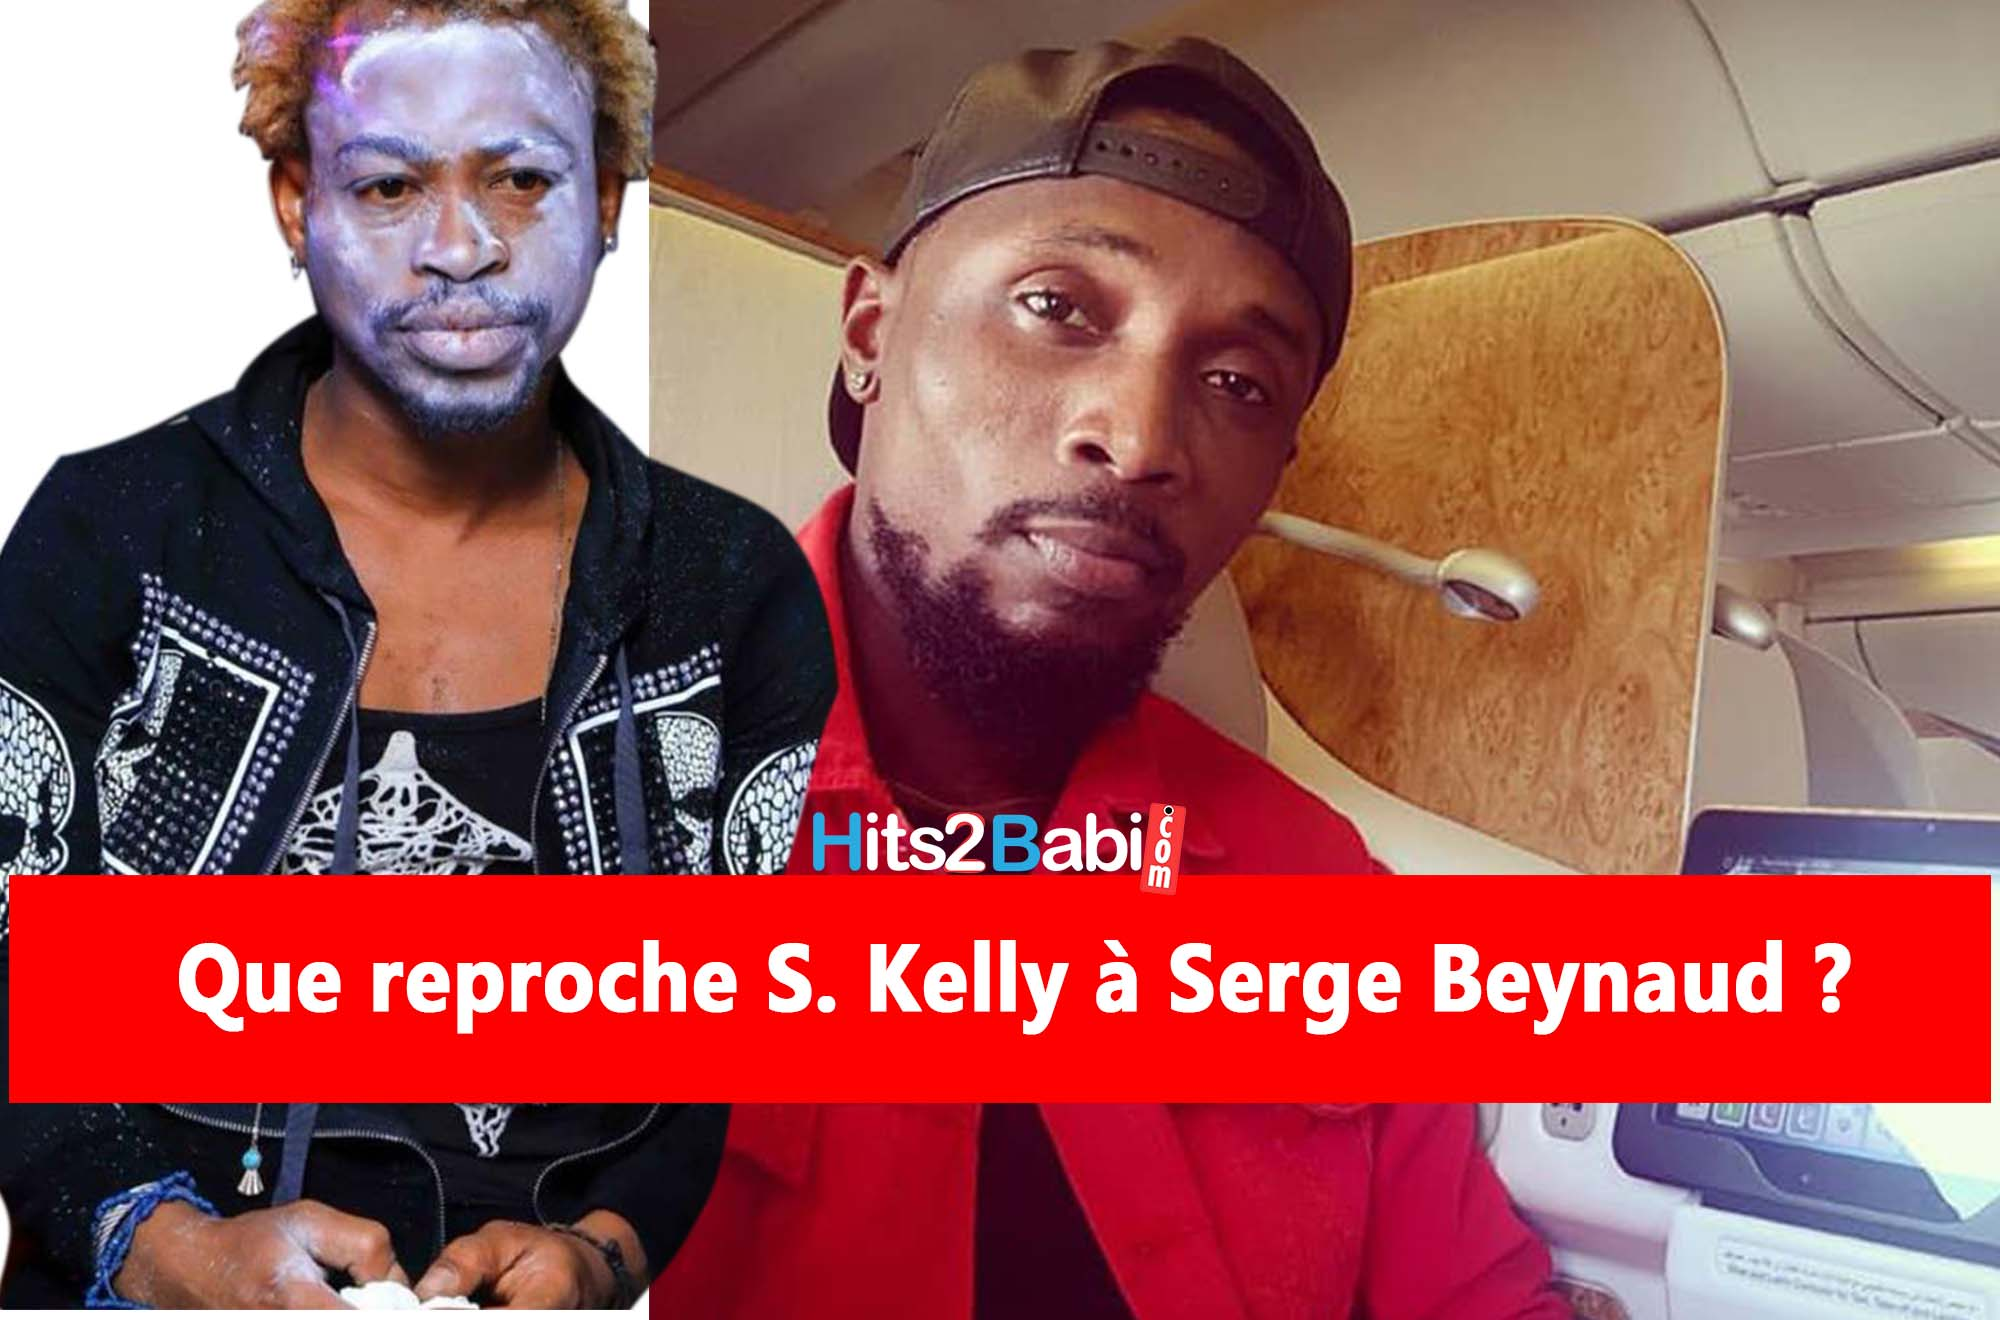 S. Kelly refuse tout contact avec Serge Beynaud. Que reproche S. Kelly à Serge Beynaud ?